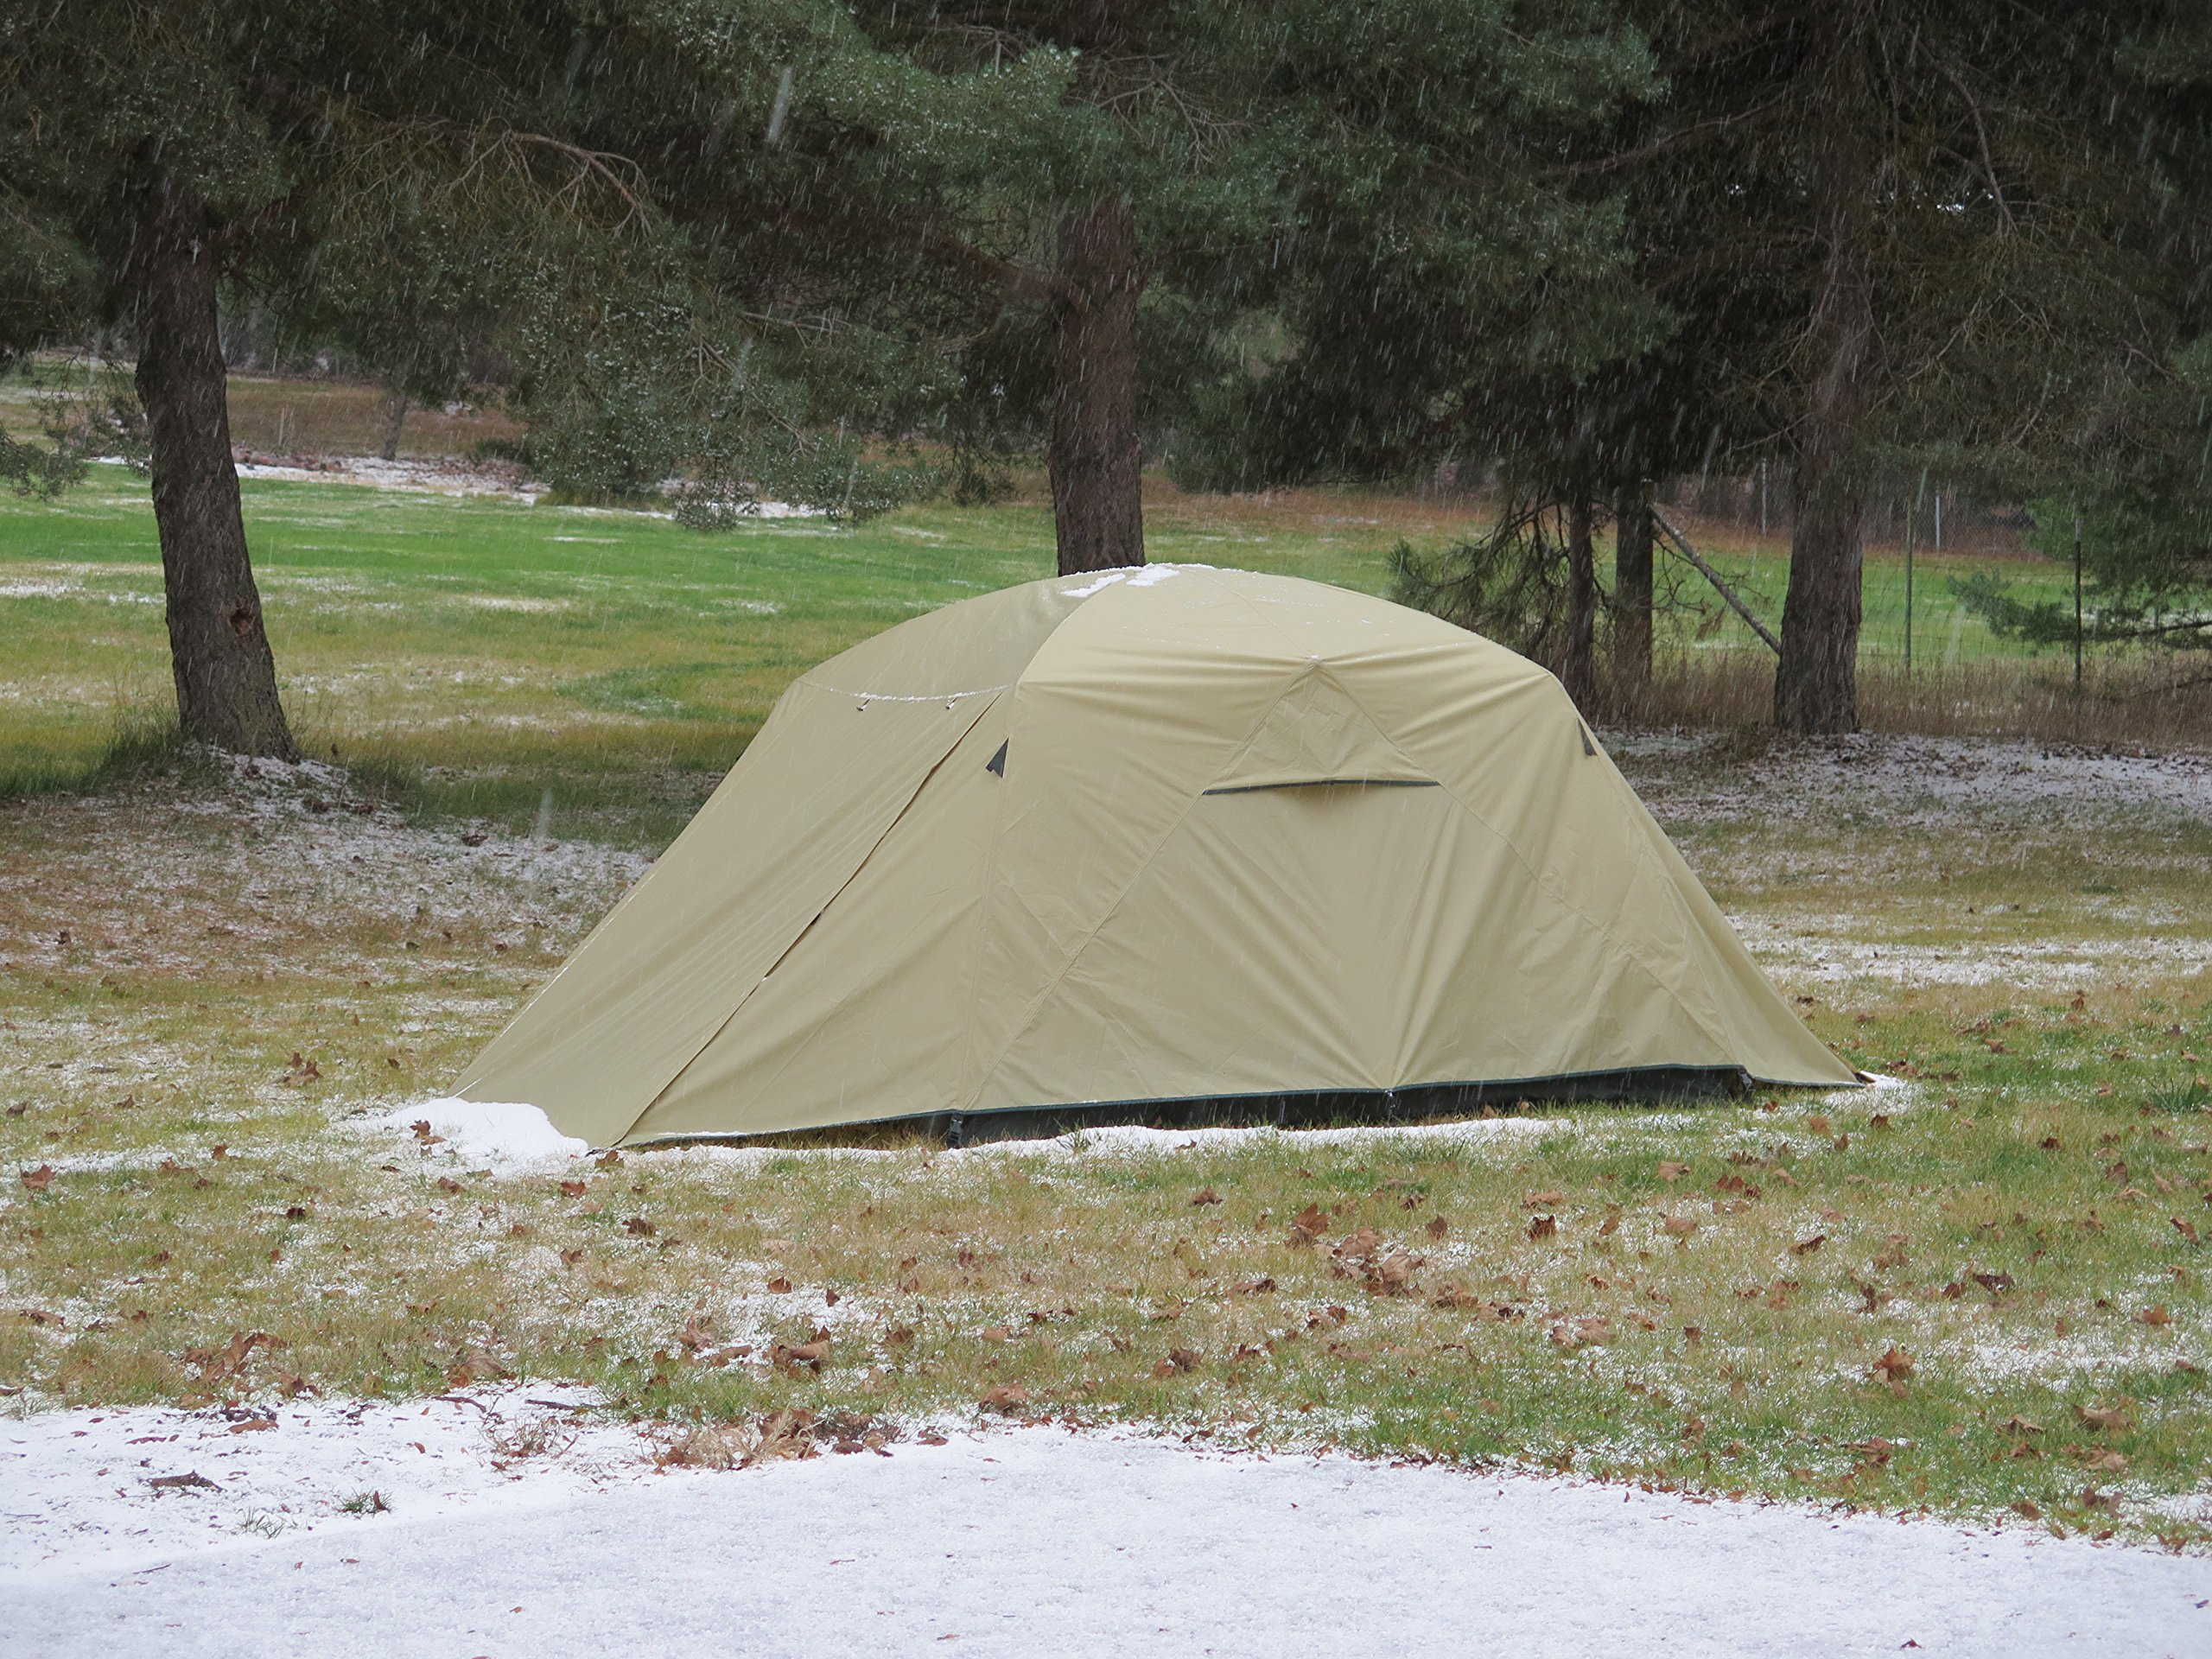 Camp Time Expedition Tent, Fast set-up, 100 square feet including vestibules, floor liner, awning poles, 7001-T6 aluminum, Designed for your cots-stools-tables,. by Camp Specialties (Image #8)